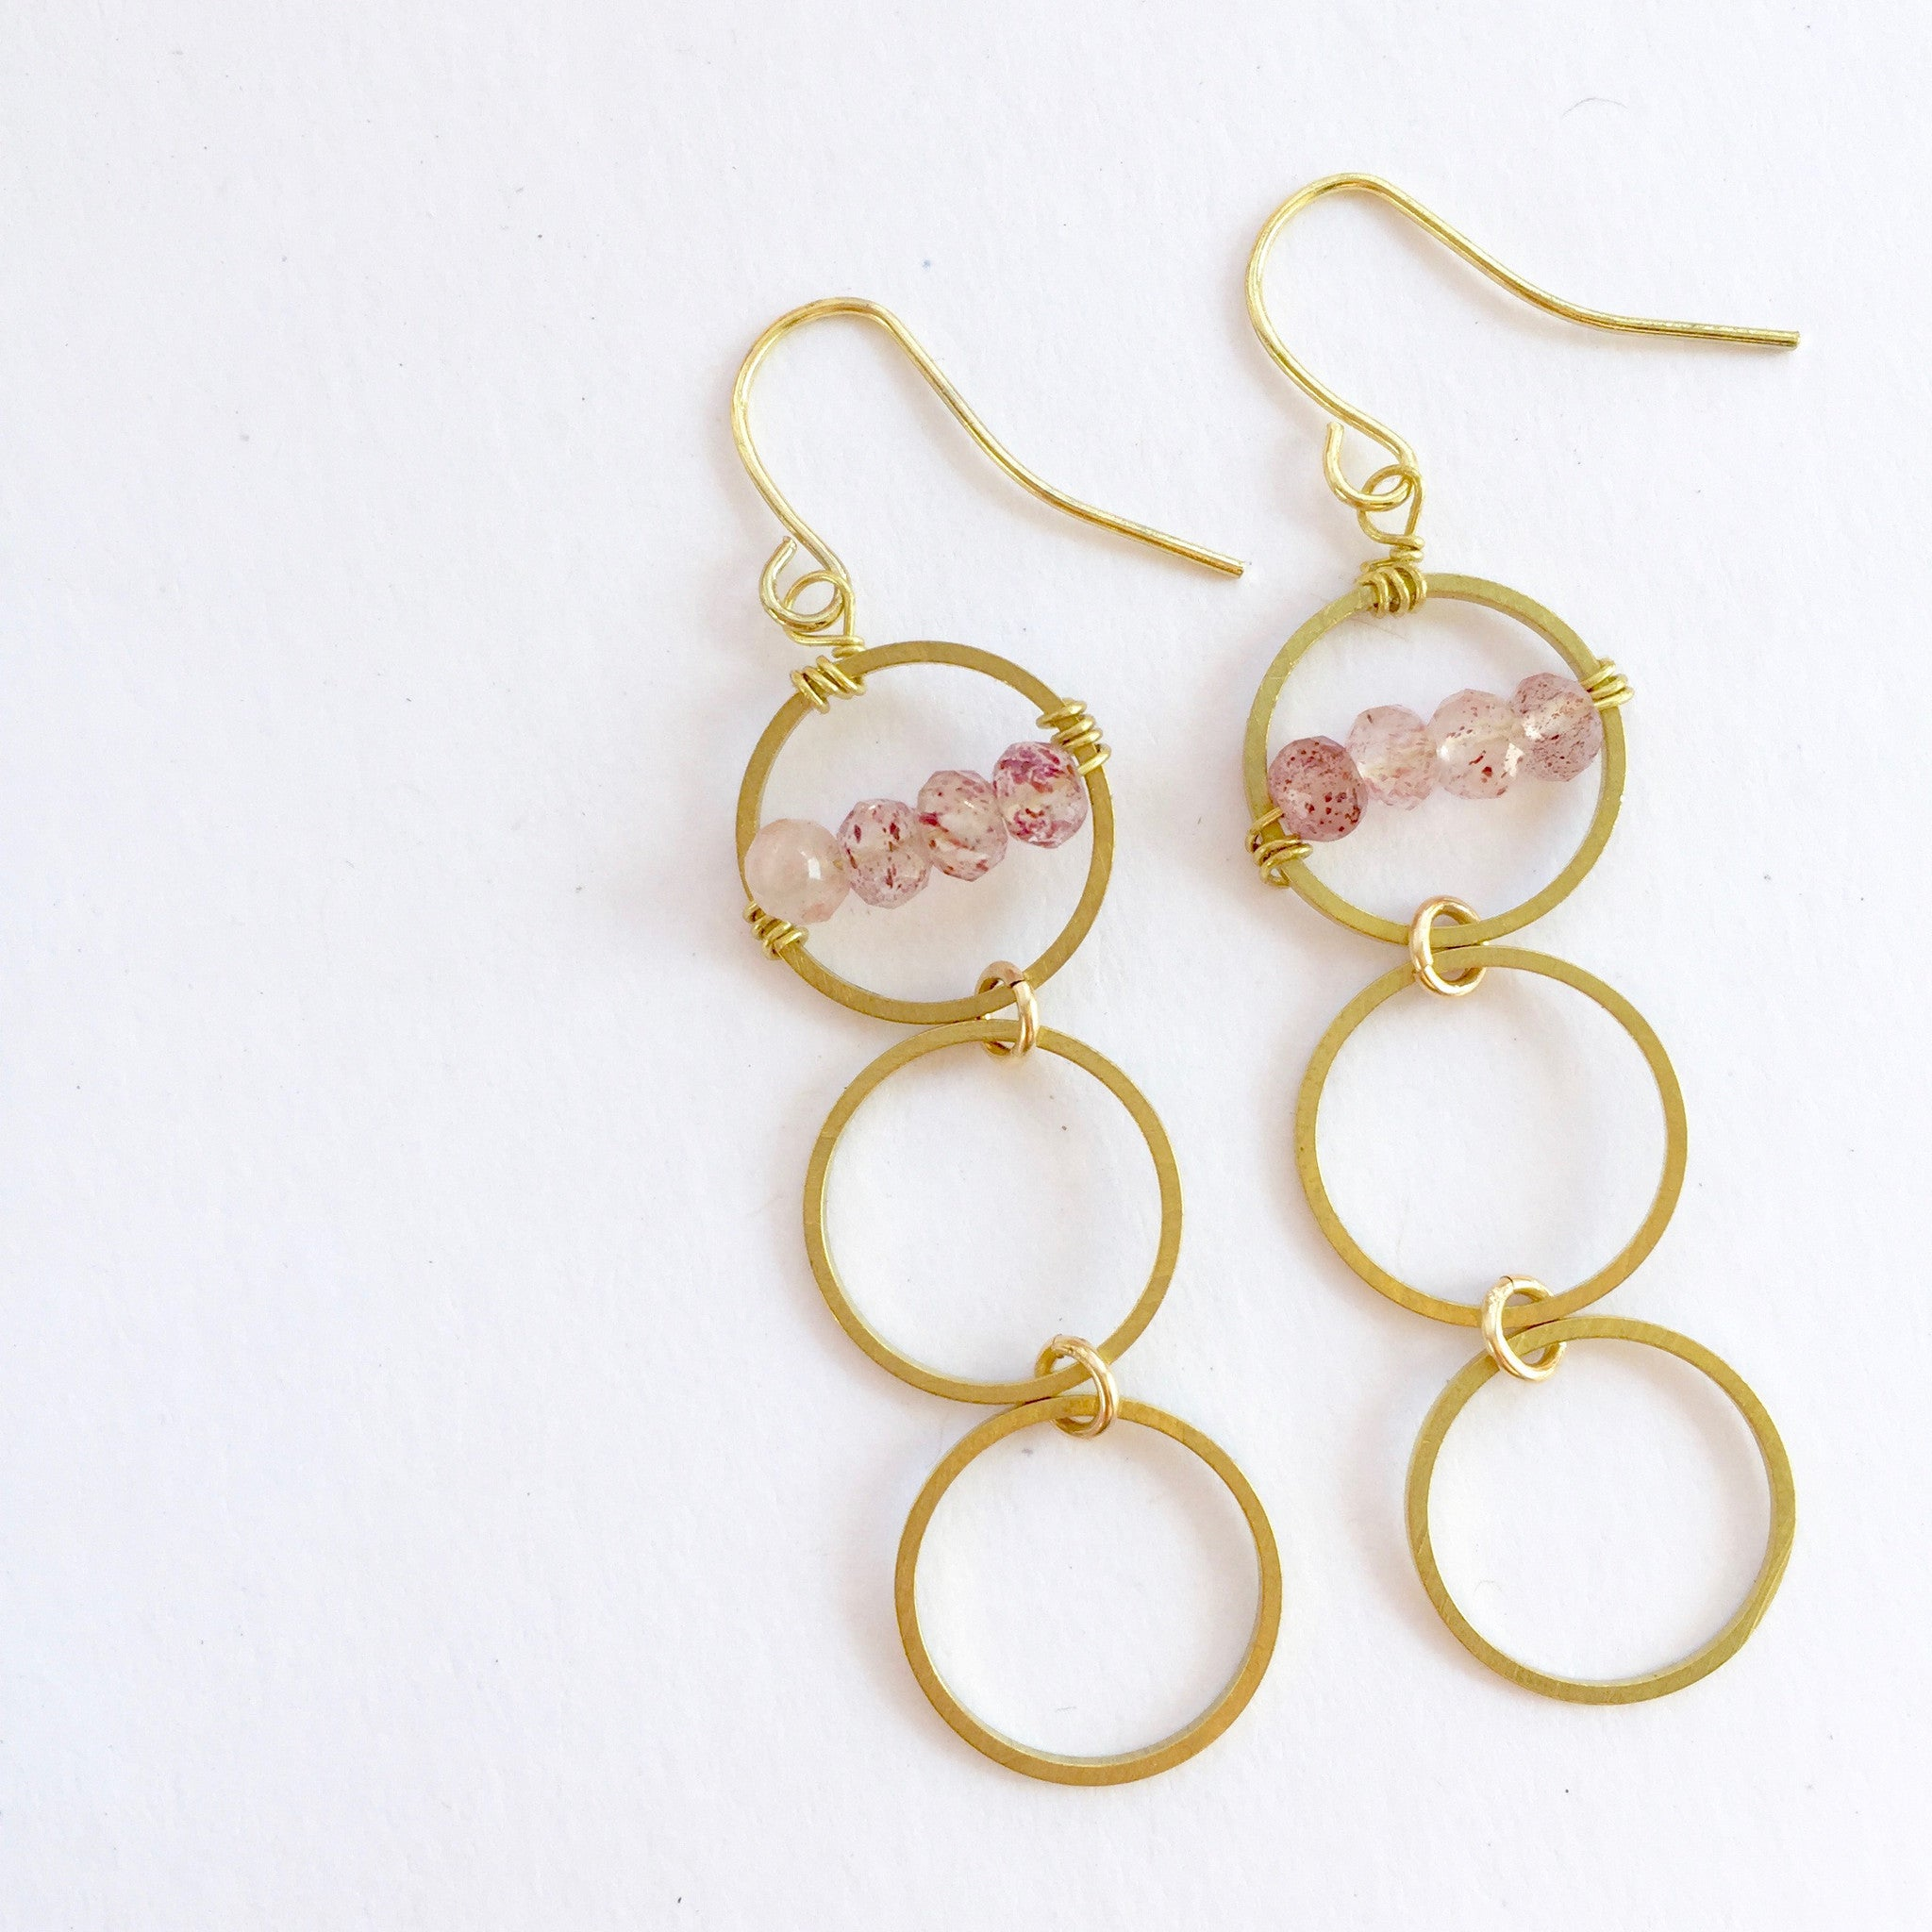 Layton Earrings in Strawberry Quartz